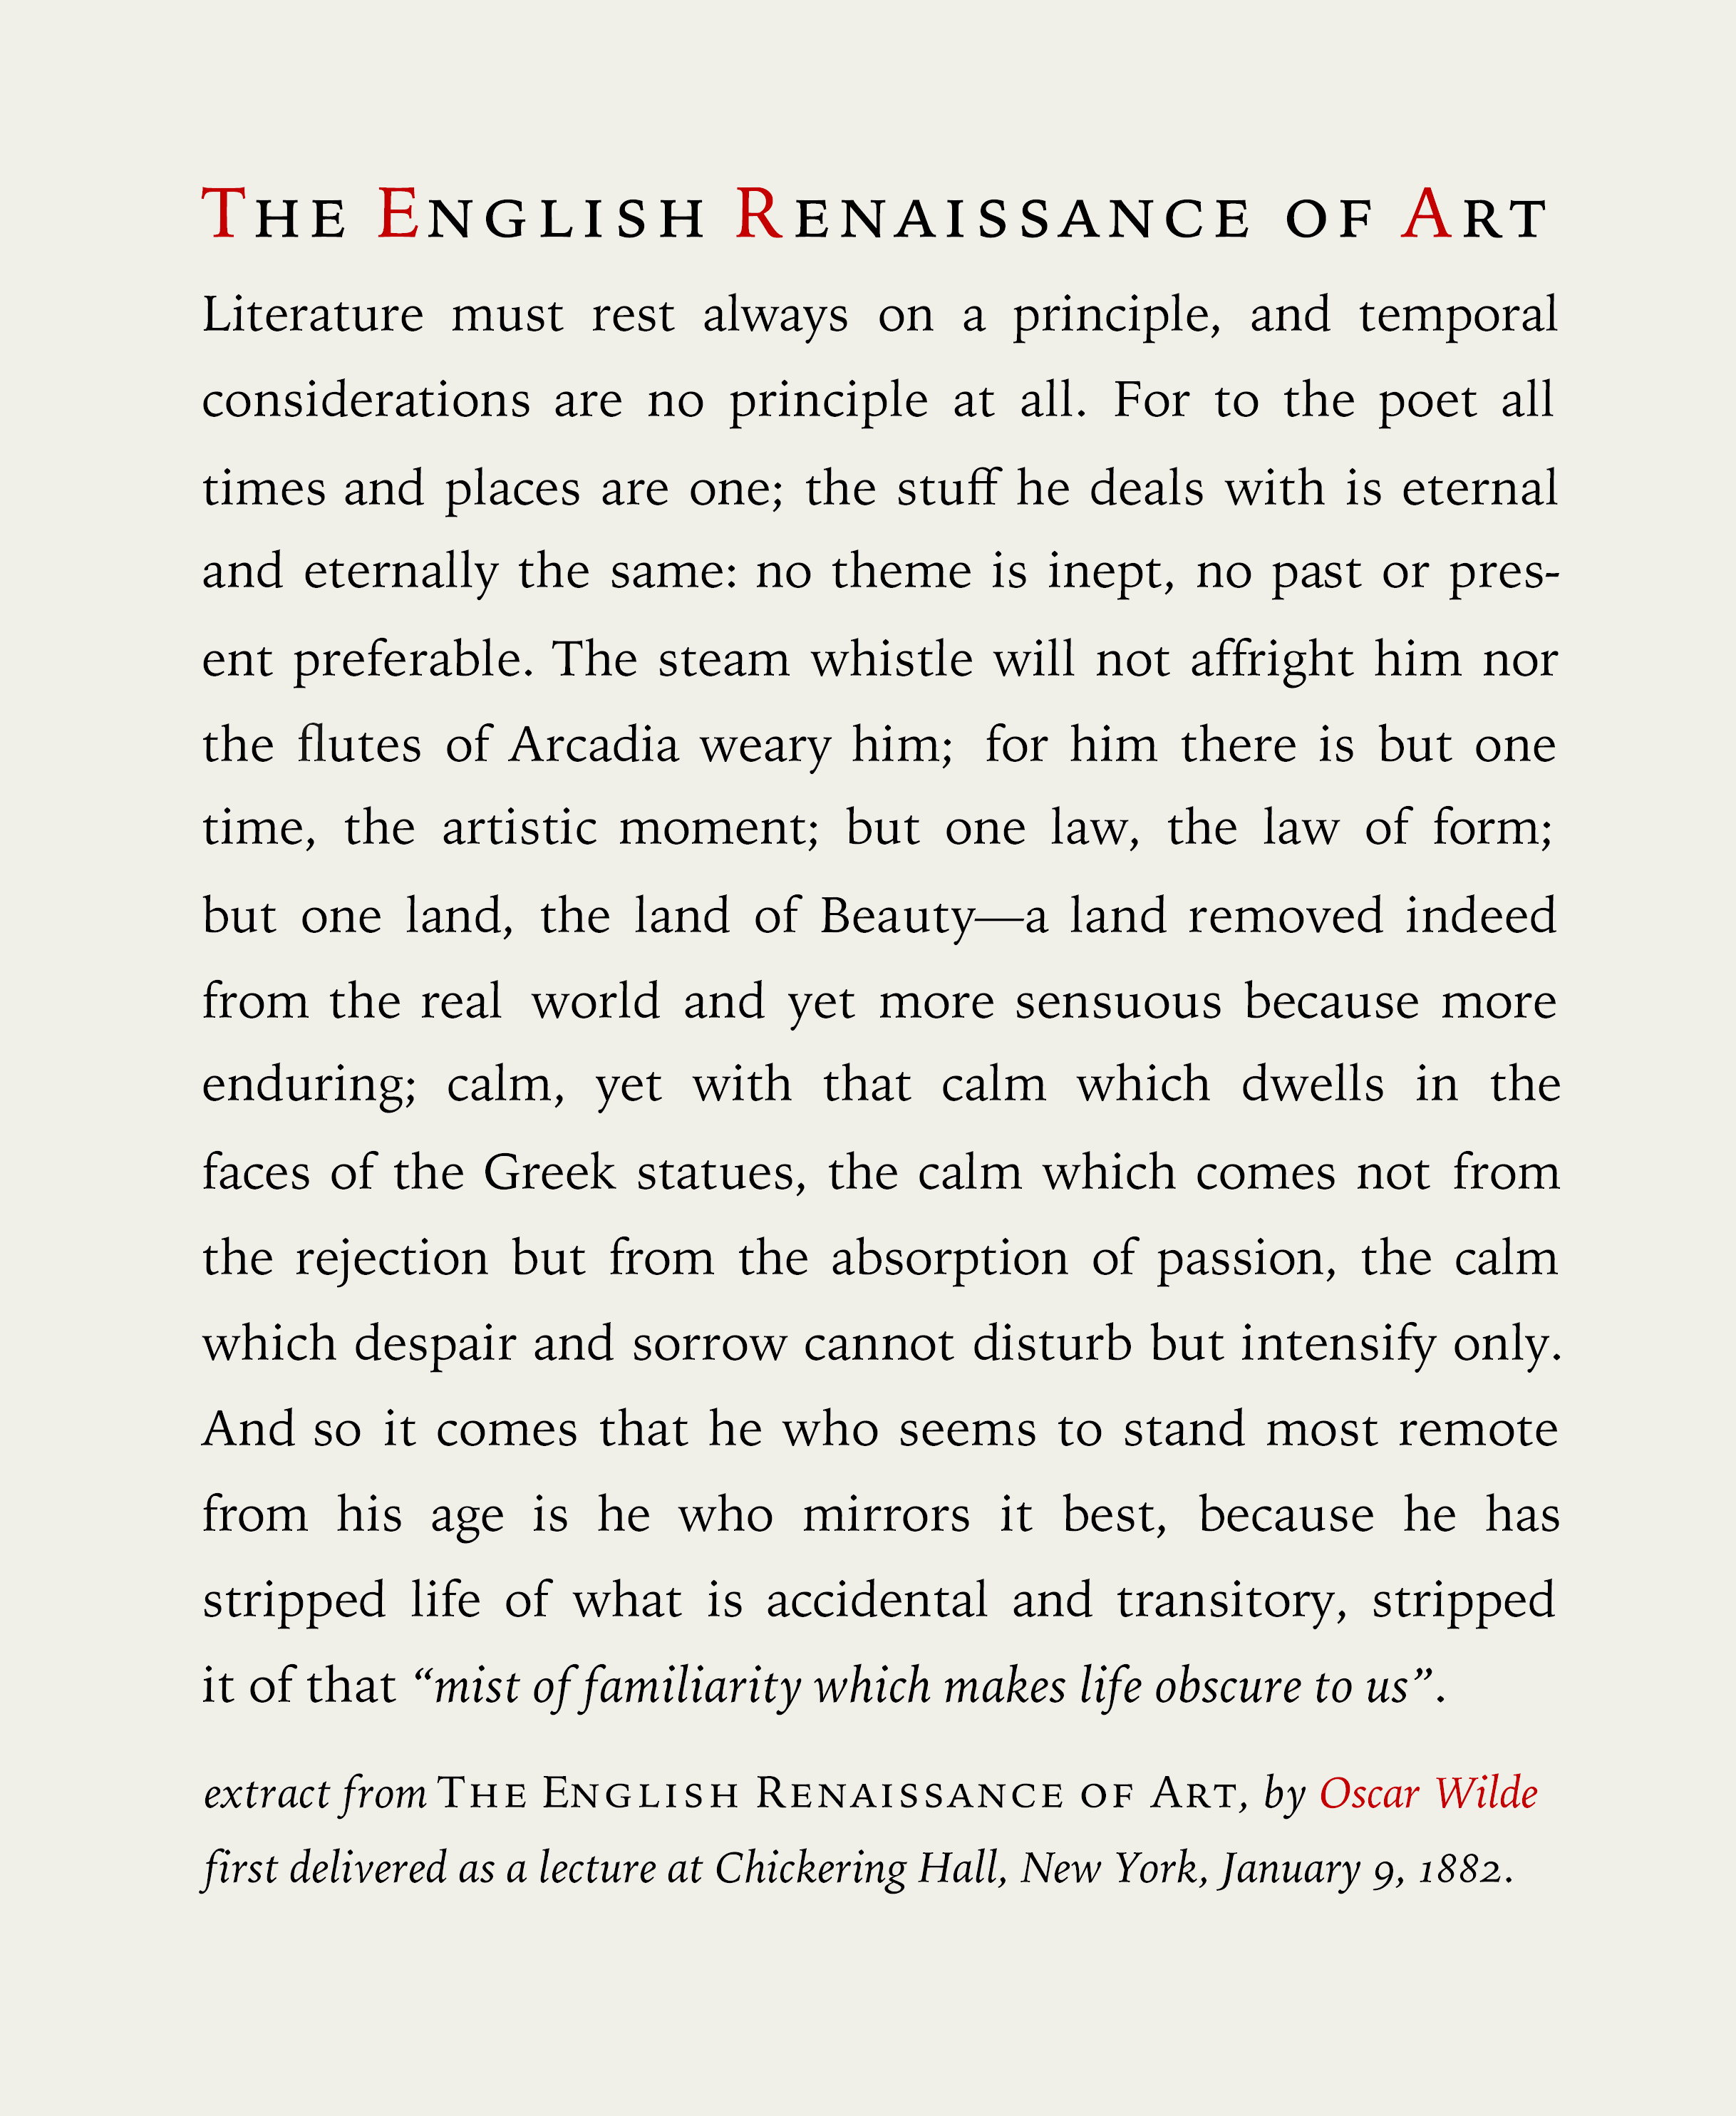 small essays in english small essays in english english essays typography text typeset example in iowan old style r italics and small caps optimized at approximately